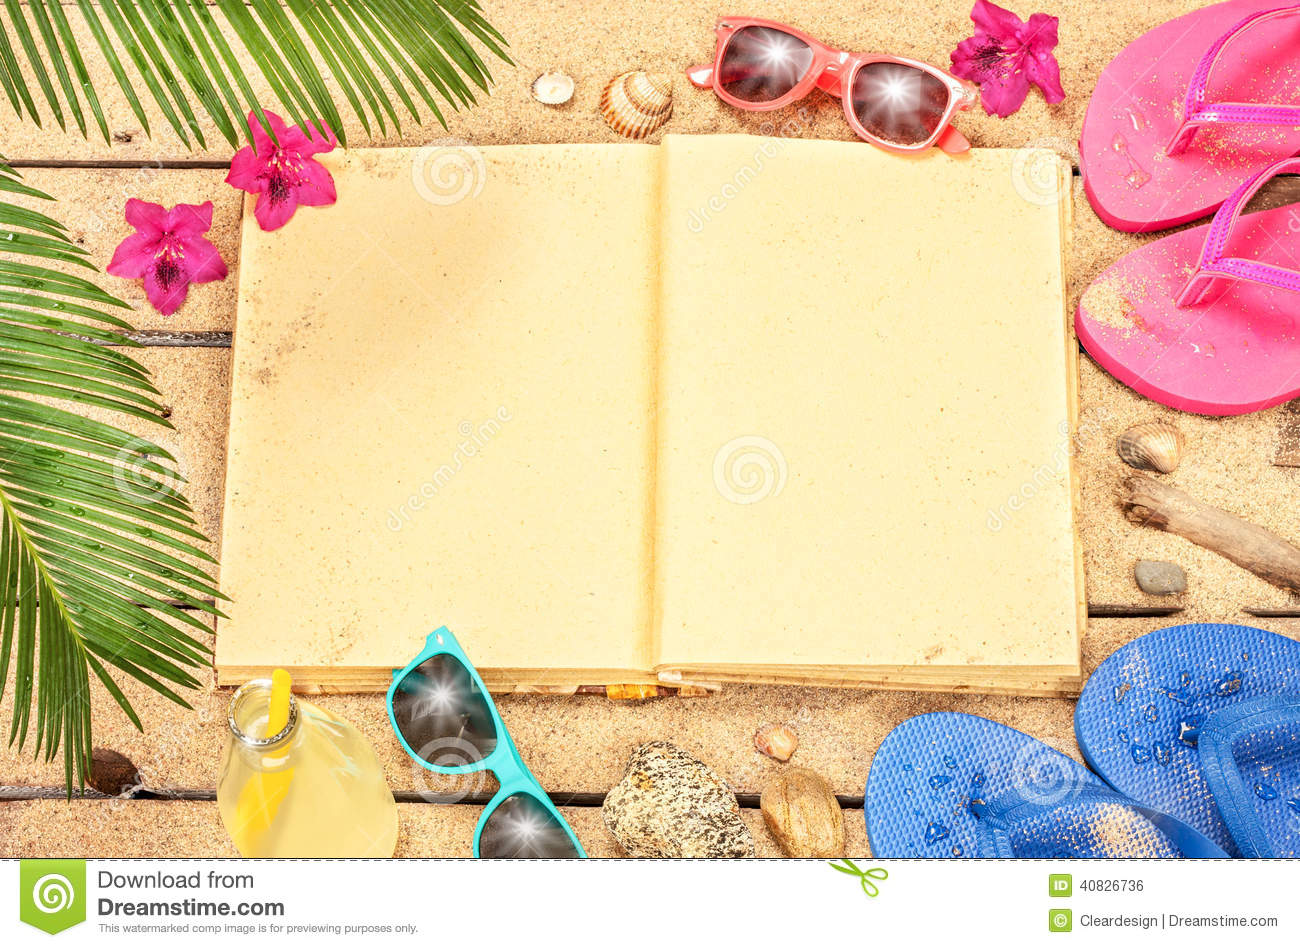 ... Book, Sand, Sunglasses And Flip Flops Stock Photo - Image: 40826736